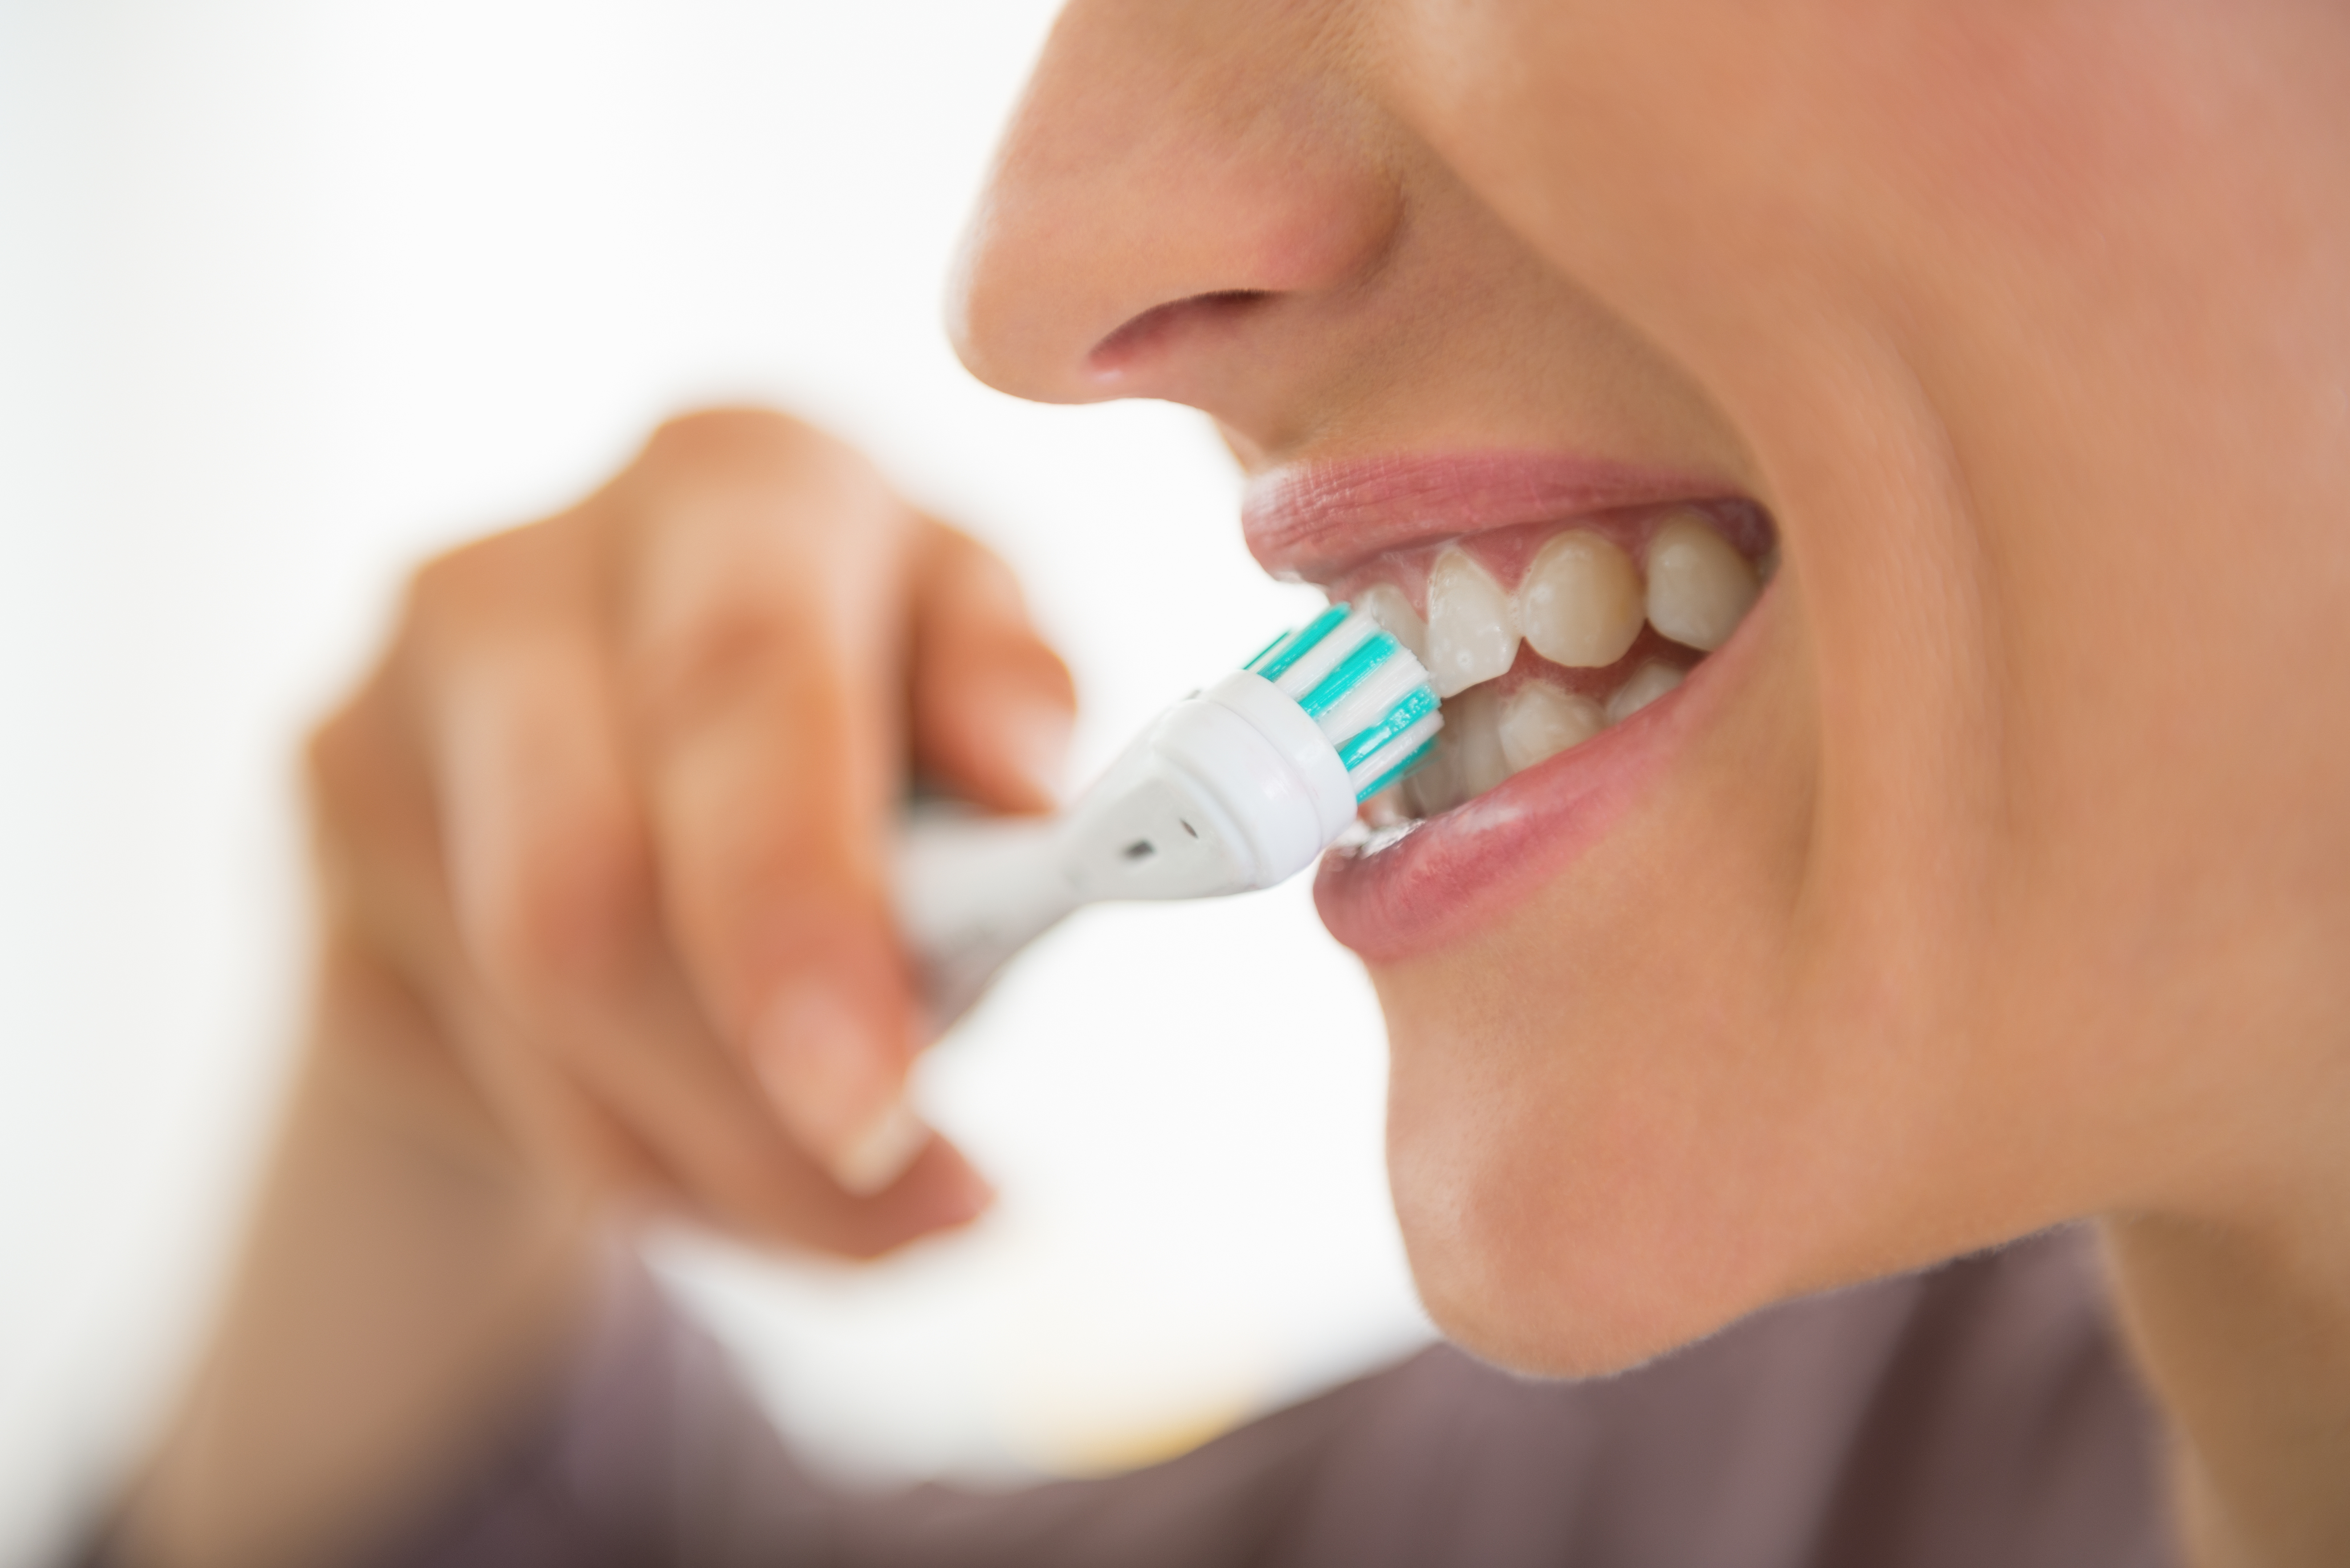 Here are some tips for fresh breath